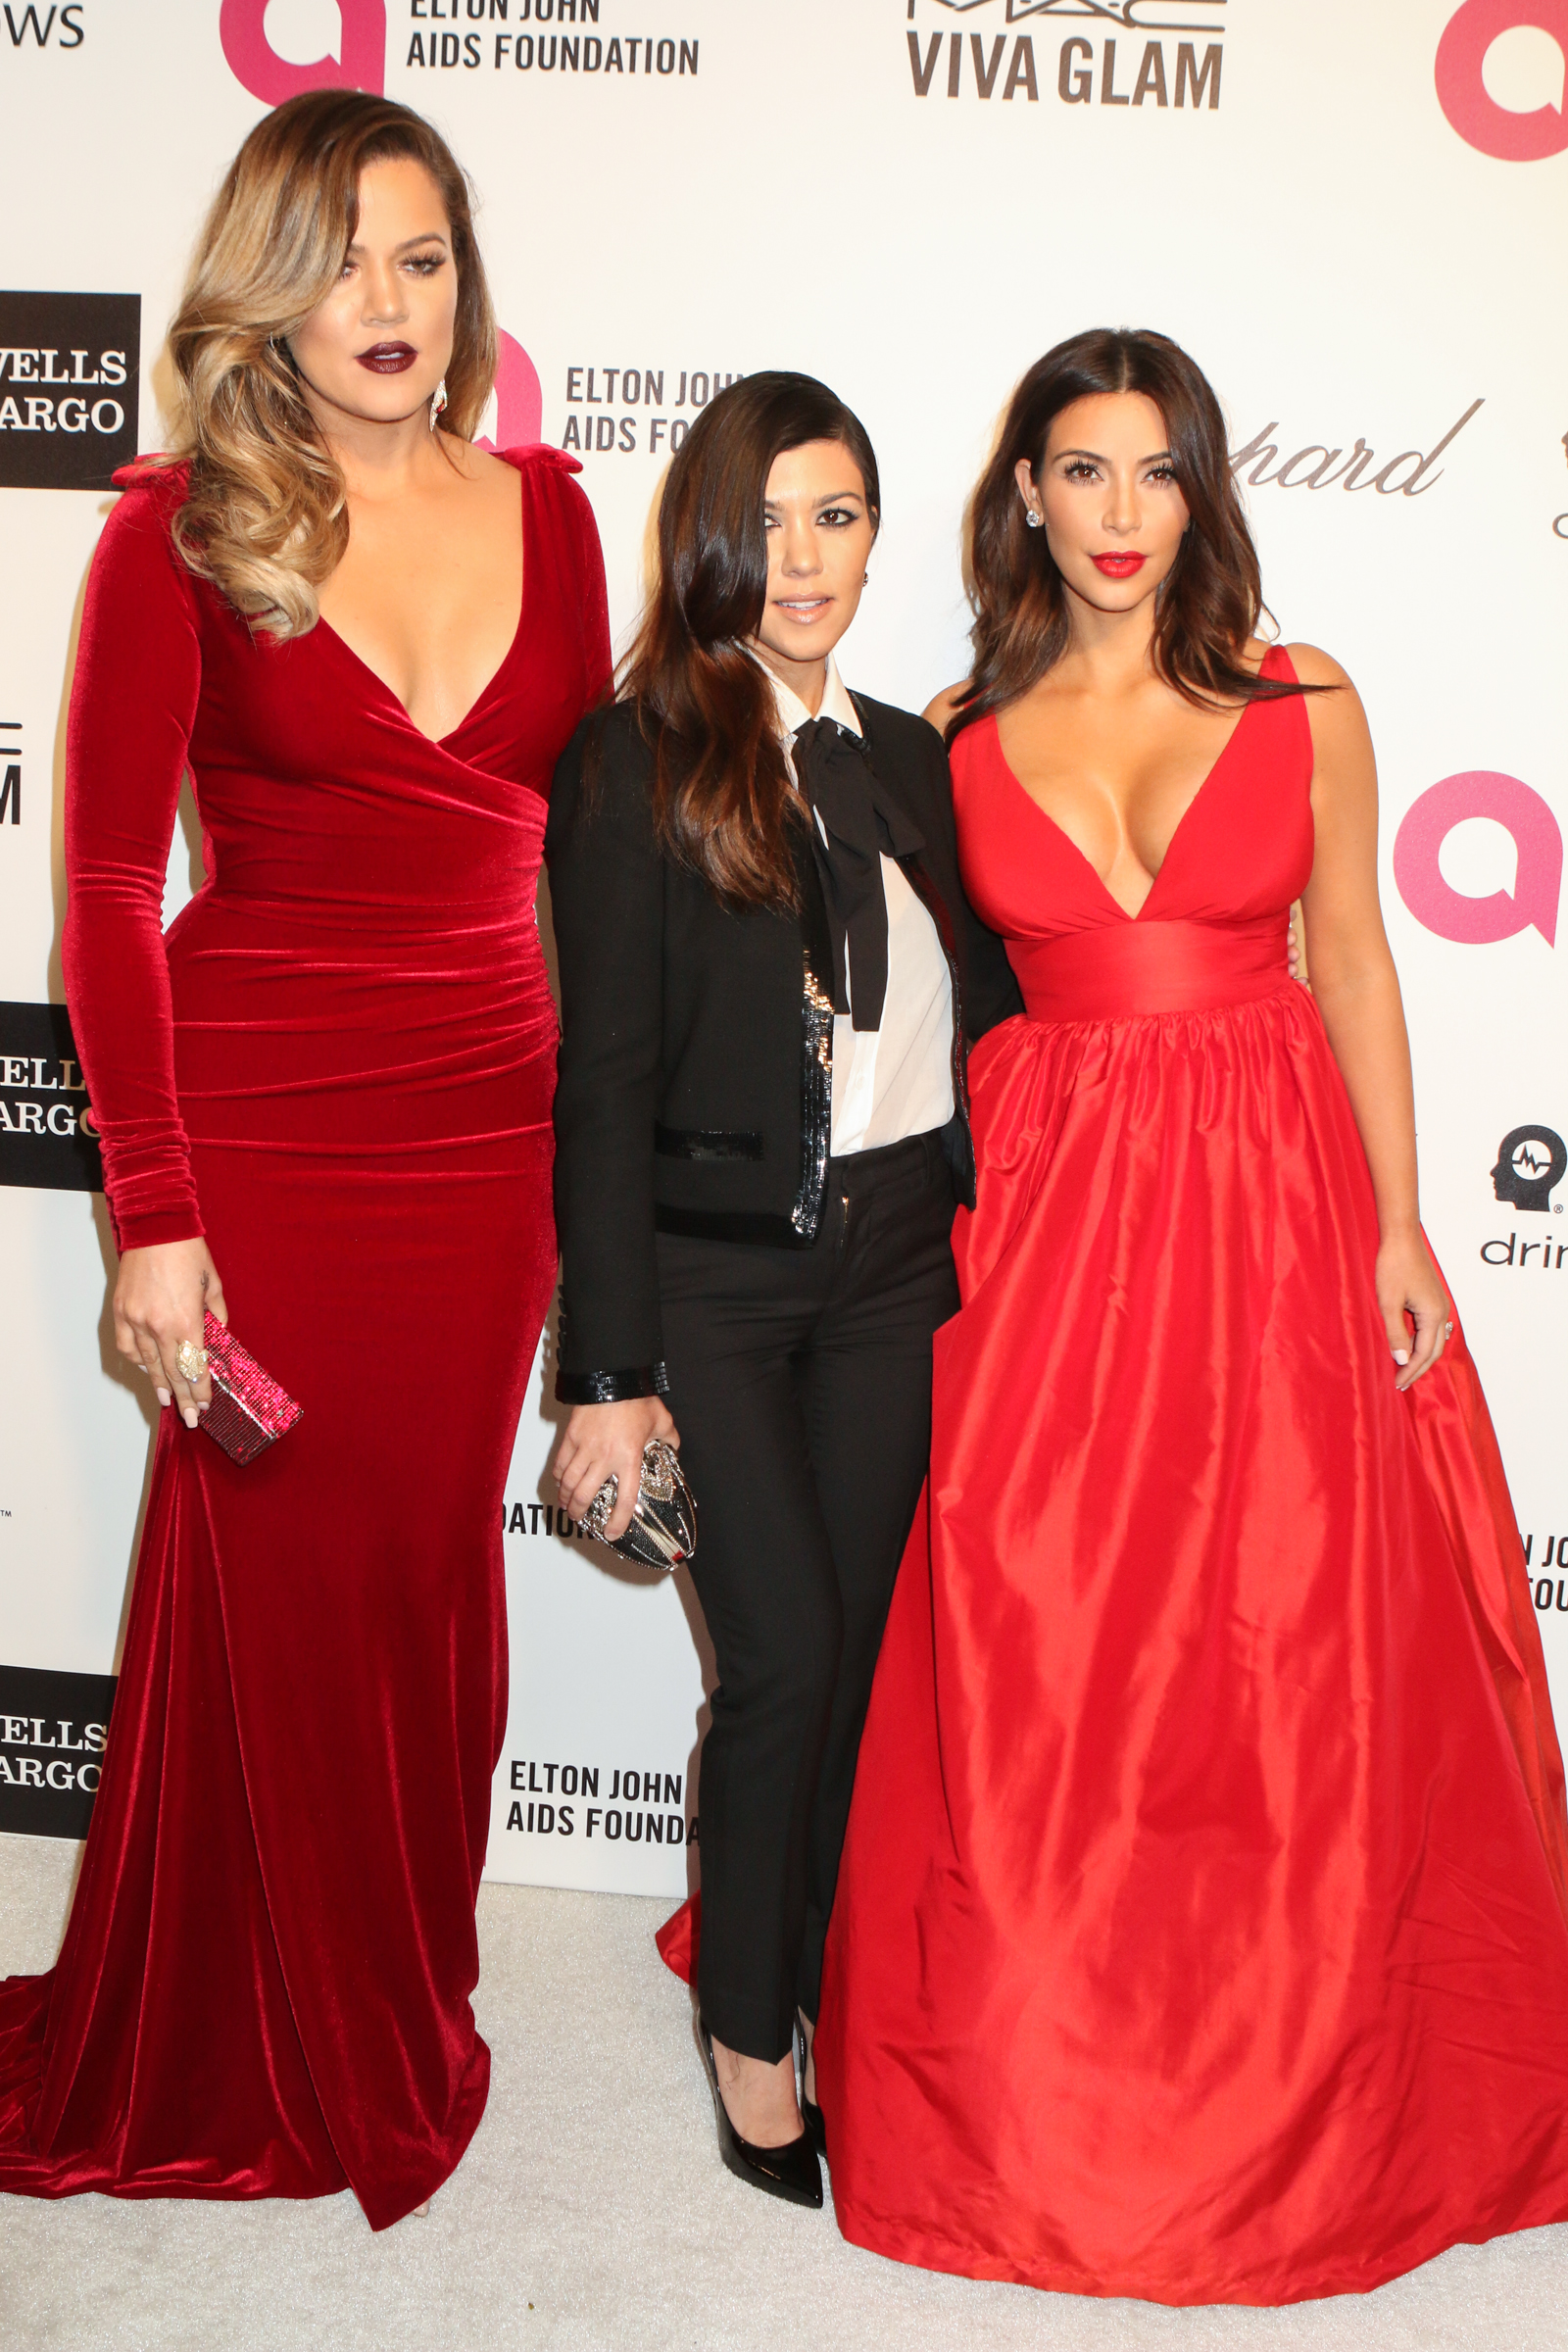 Elton John Aids Foundation presents 22nd Annual Academy Awards viewing party - Arrivals  Featuring: Khloe Kardashian,Kourtney Kardashian,Kim Kardashian Where: West Hollywood, California, United States When: 02 Mar 2014 Credit: FayesVision/WENN.com